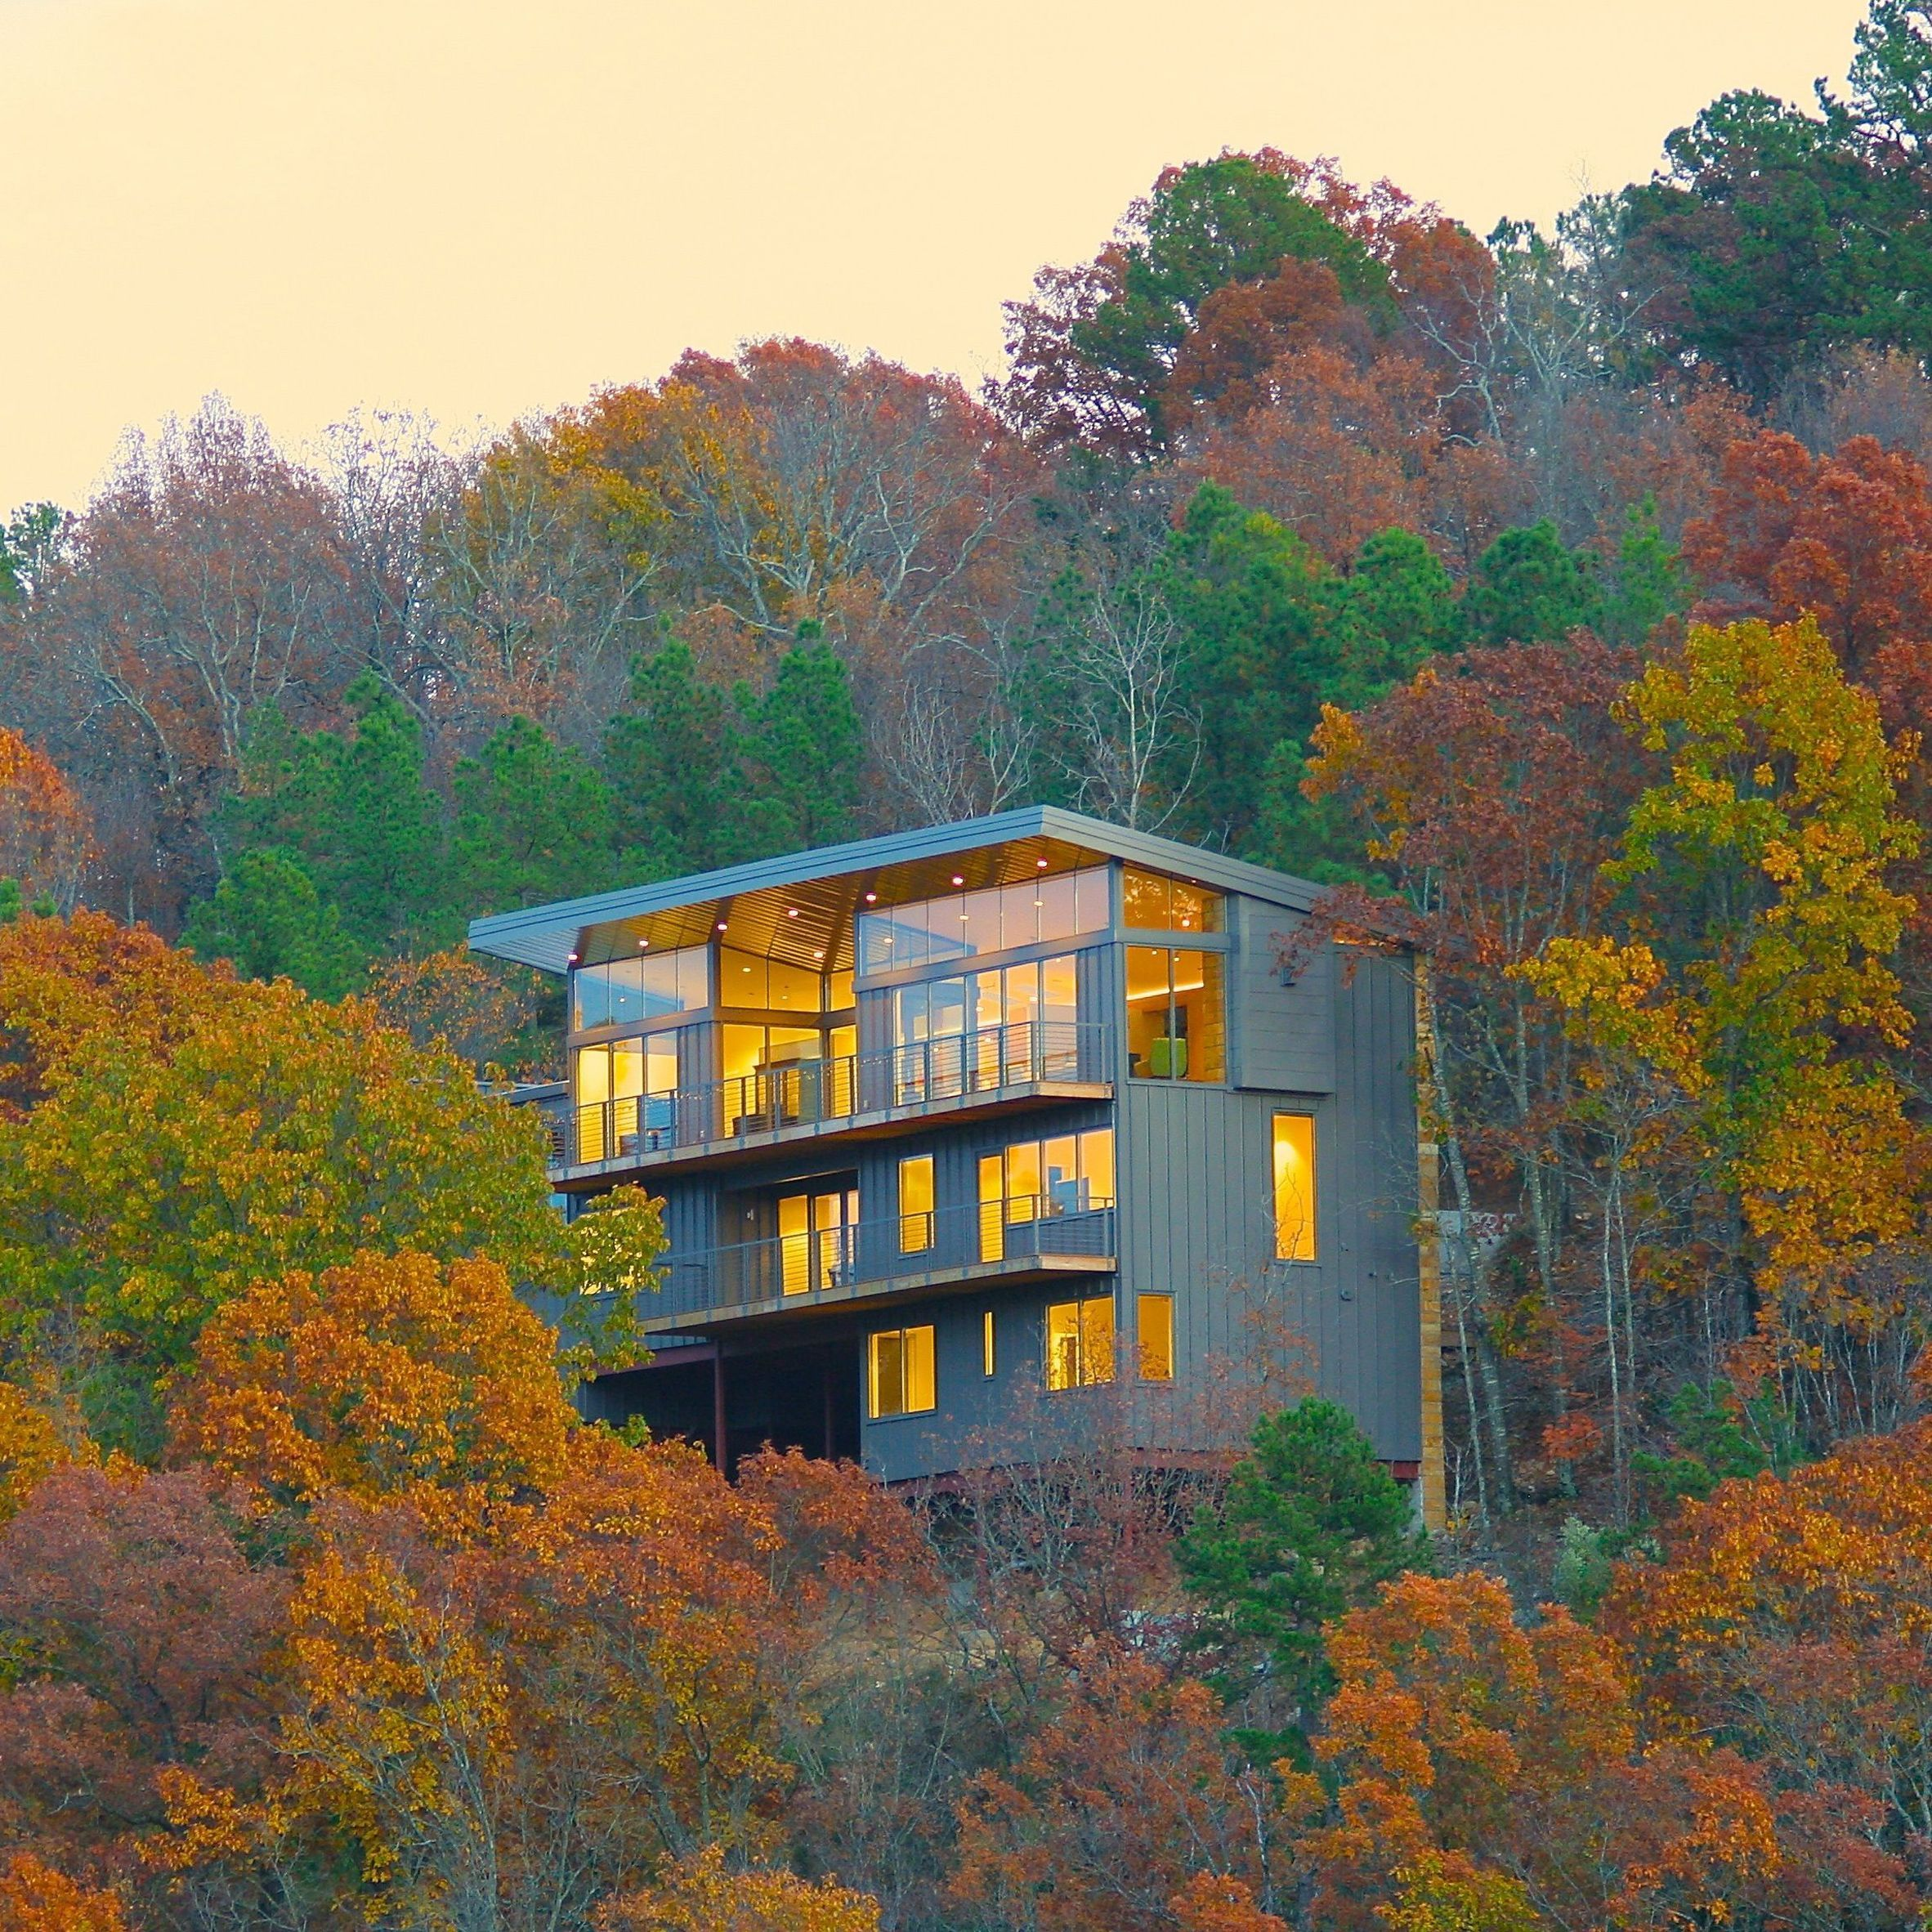 Wesley Walls embeds multilevel home into forested